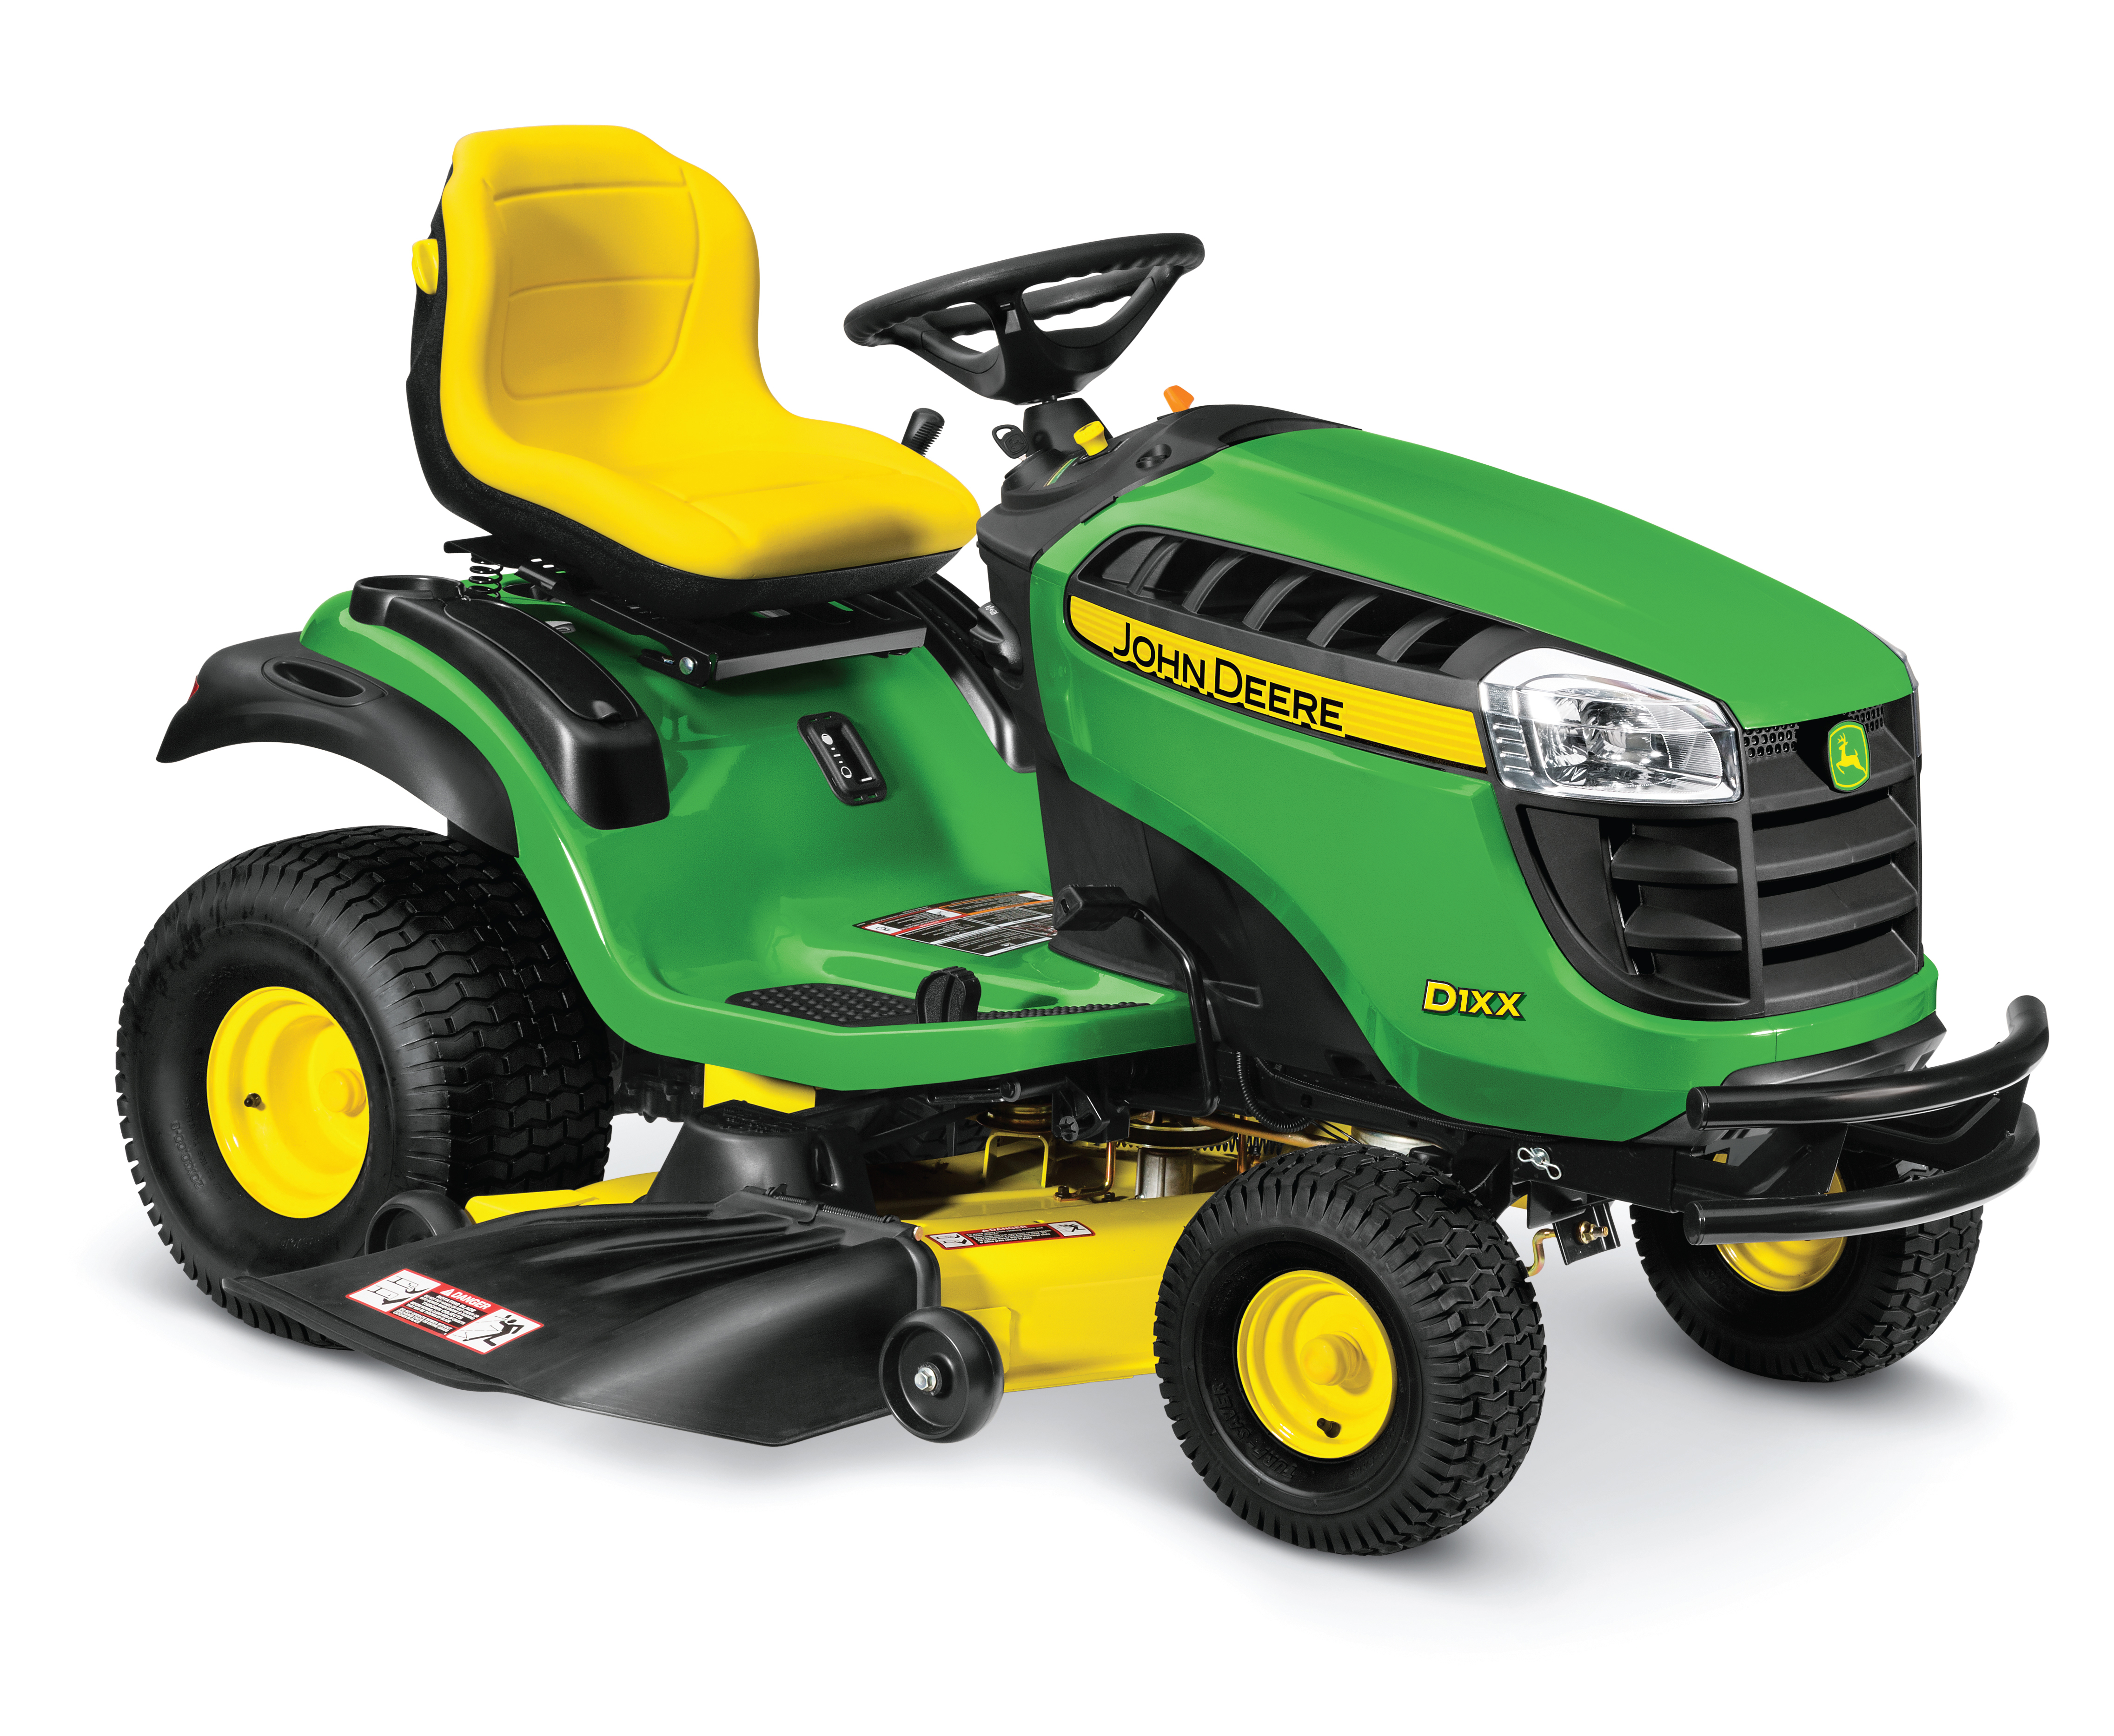 "John Deere Recalls Riding Lawn Tractors | CPSC.gov on john deere d101, john deere la135, john deere attachments, john deere mower discharge chute, john deere d155, john deere 42 inch lawn mower, john deere 108, john deere 125 wiring diagram, john deere 1026r, john deere d120, john deere rear tires, john deere d117, john deere riding lawn mowers, john deere 42"" mower bagger, john deere d110, john deere d104, john deere la115, john deere electrical schematics, john deere l110,"